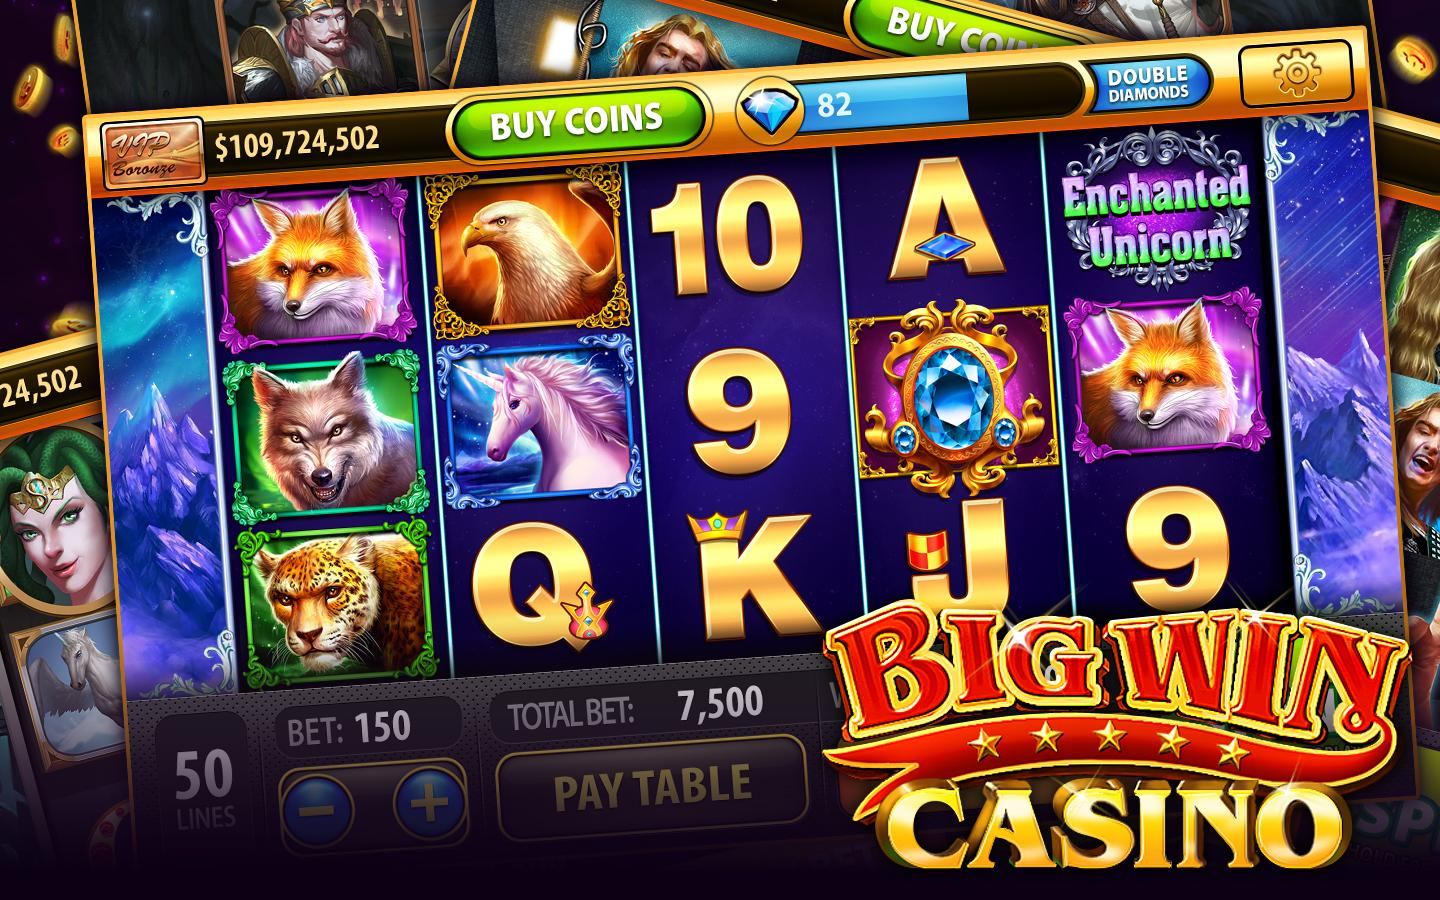 Big Win Cat Slot Machine - Play Online for Free Now